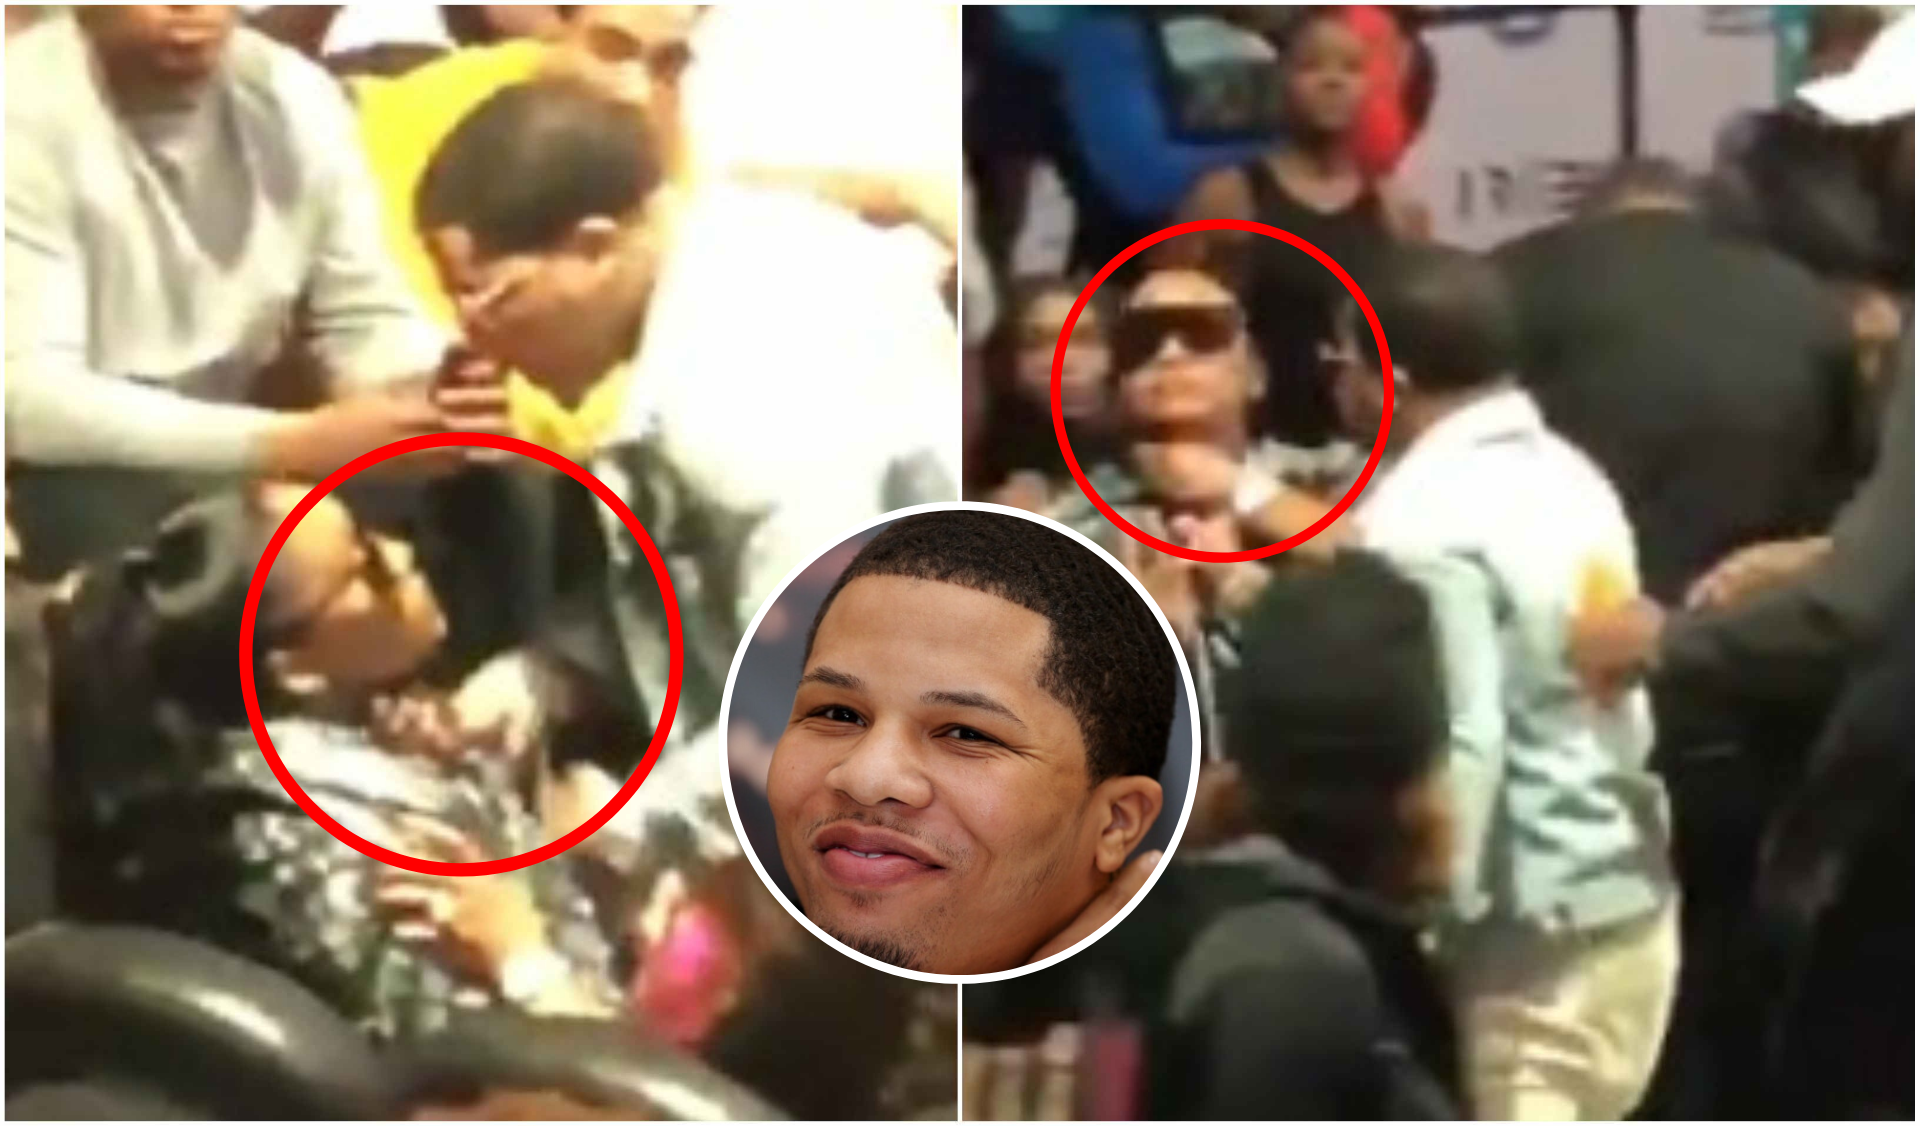 World Champion Boxer Gervonta Davis gets in a physical altercation with a women - Gervonta